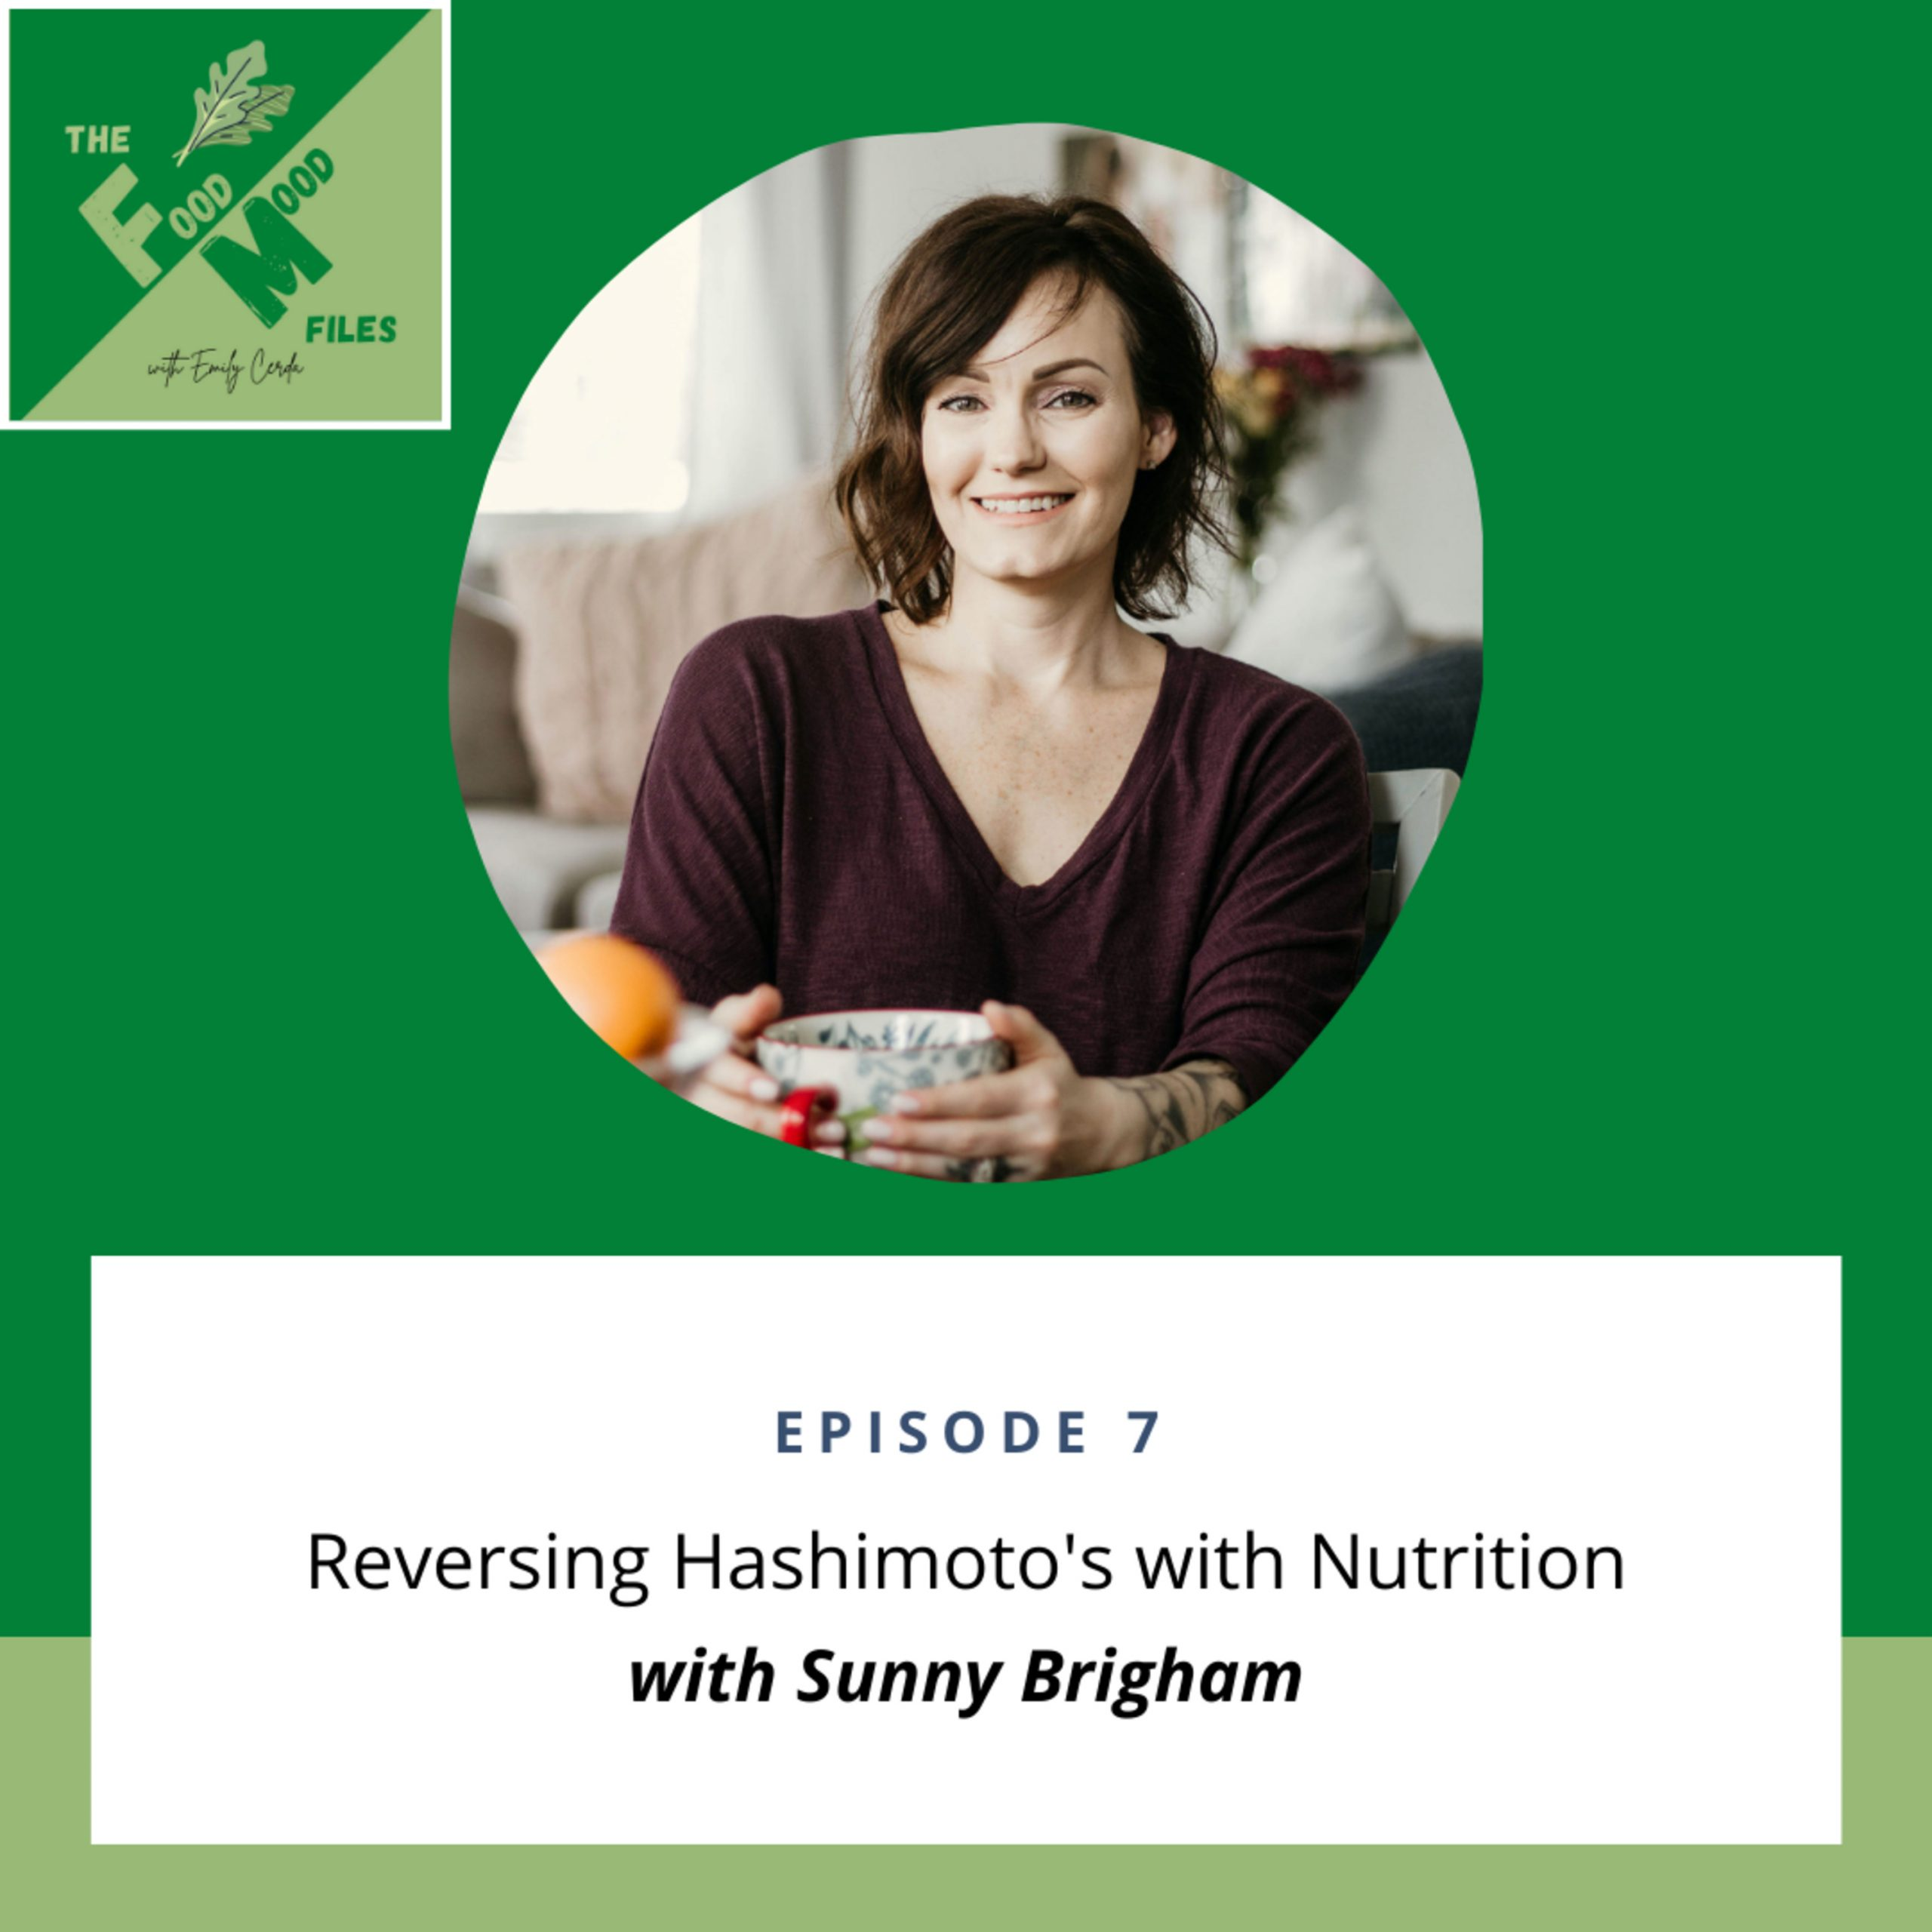 7: Reversing Hashimoto's with Nutrition